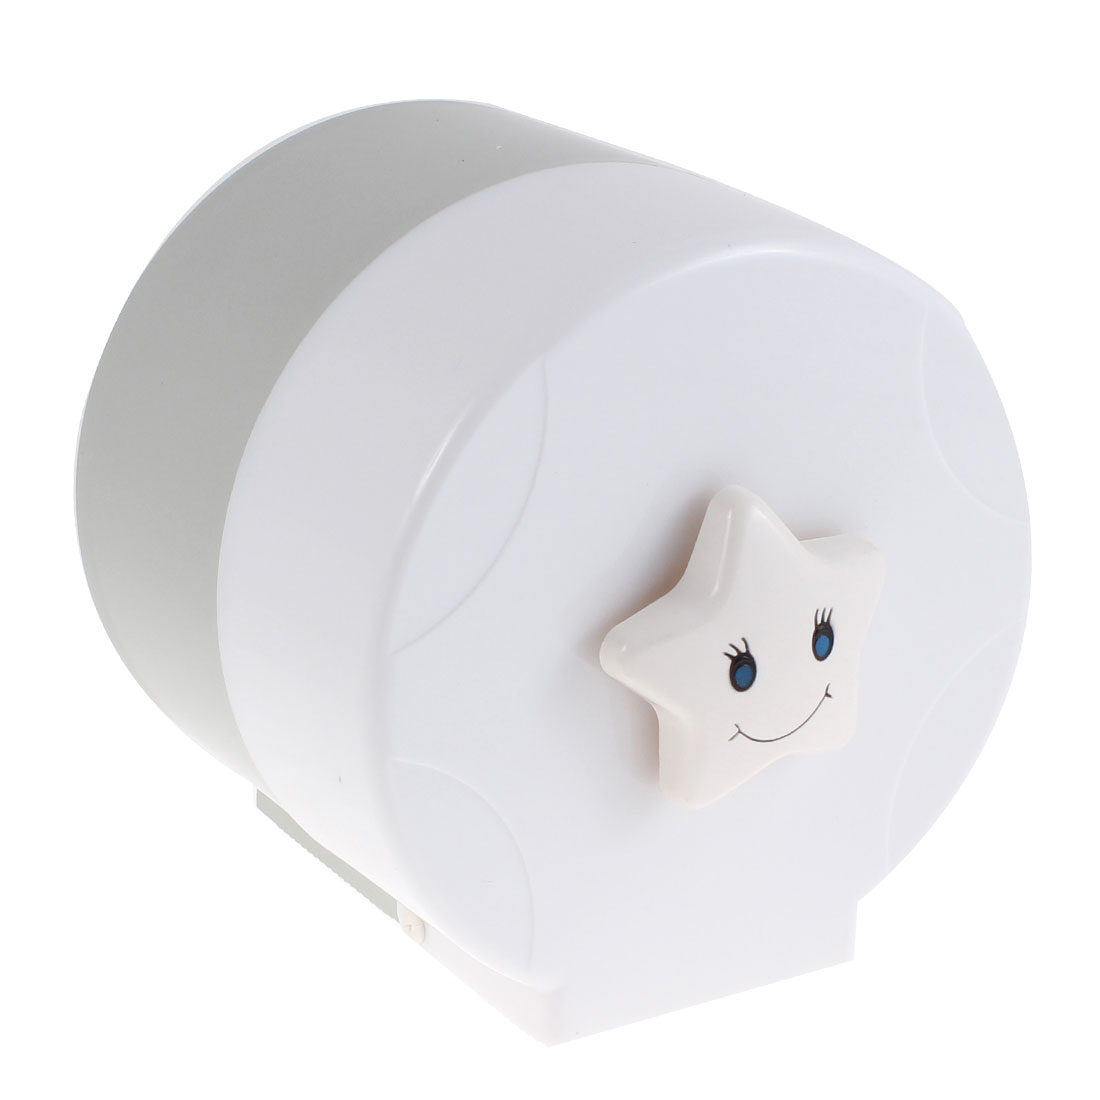 Plastic Cylindrical Style Toilet Paper Rack Tissue Holder Box White